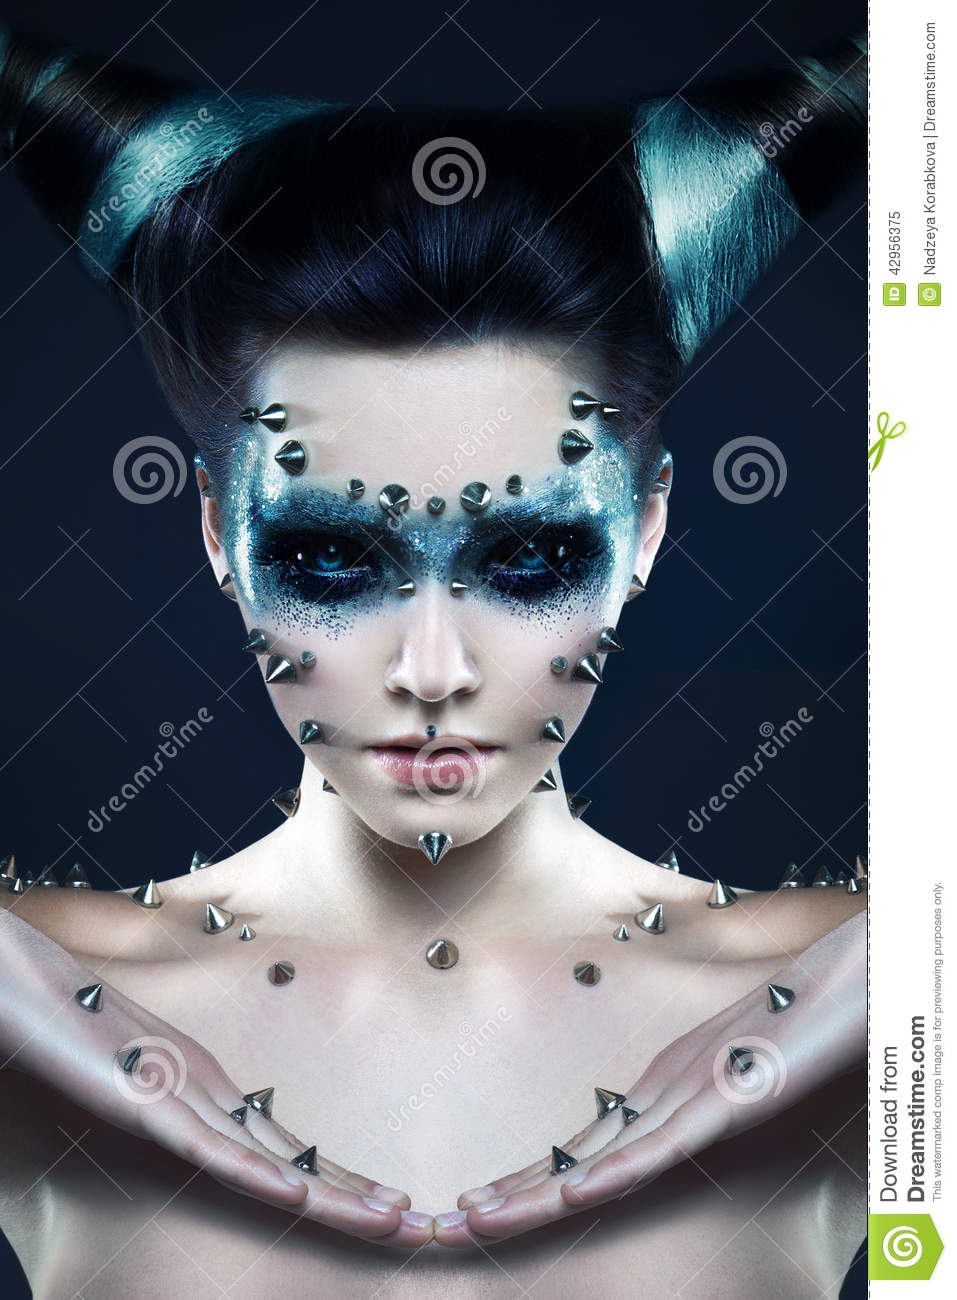 Demon Girl With Spikes On The Face And Body Stock Photo